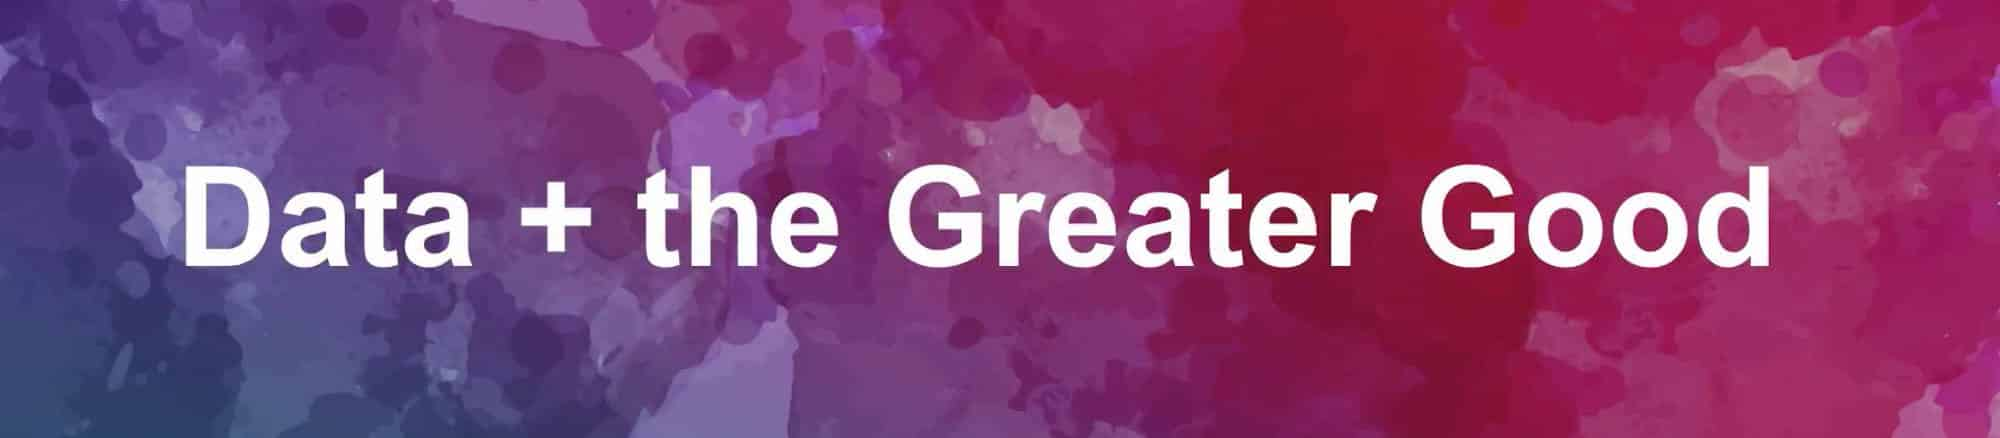 Data + the Greater Good: GlobalGiving Banner